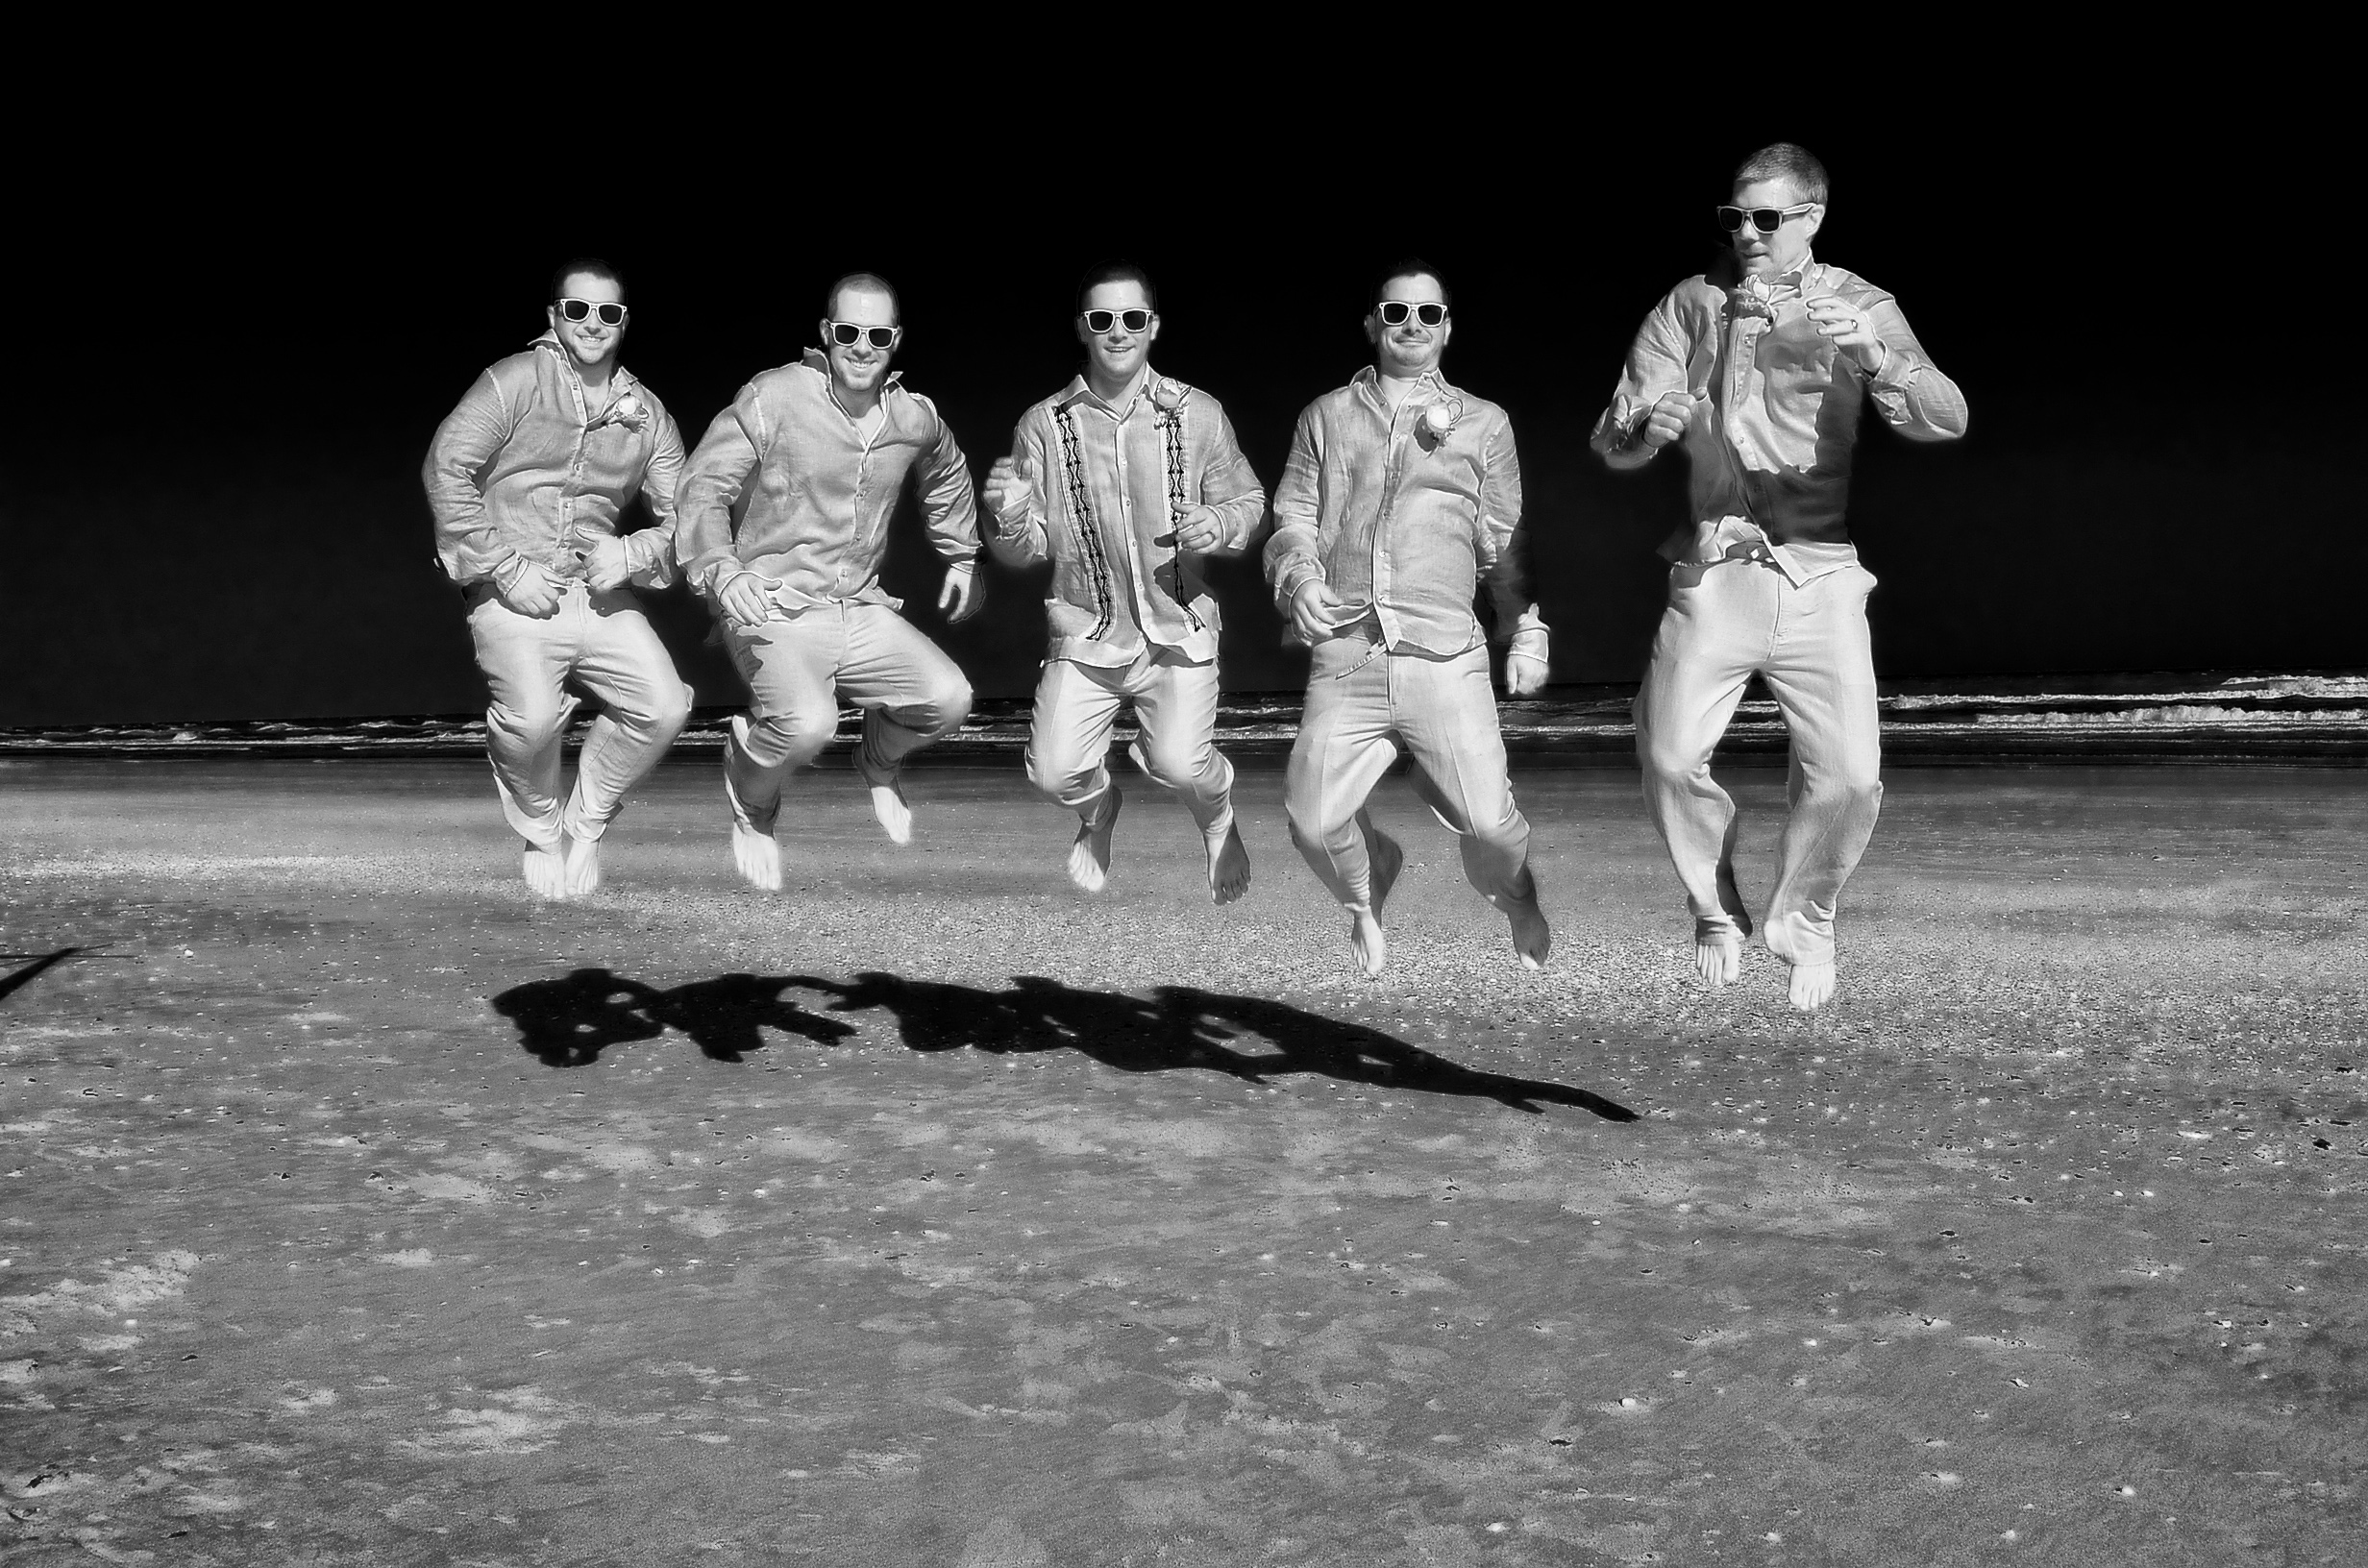 Grooms on the moon.